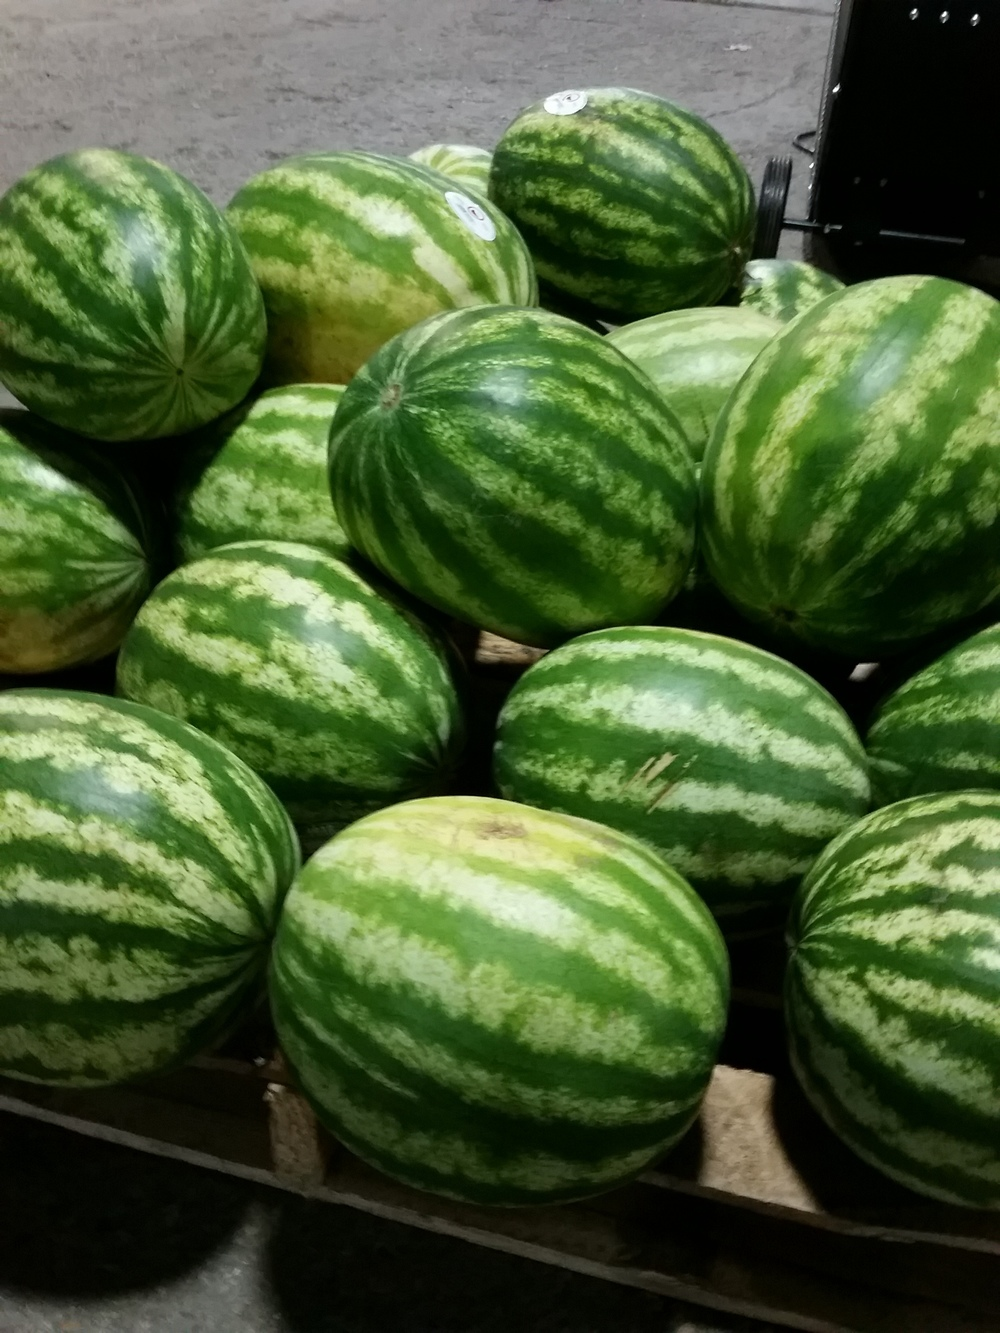 A LOT of watermelon...